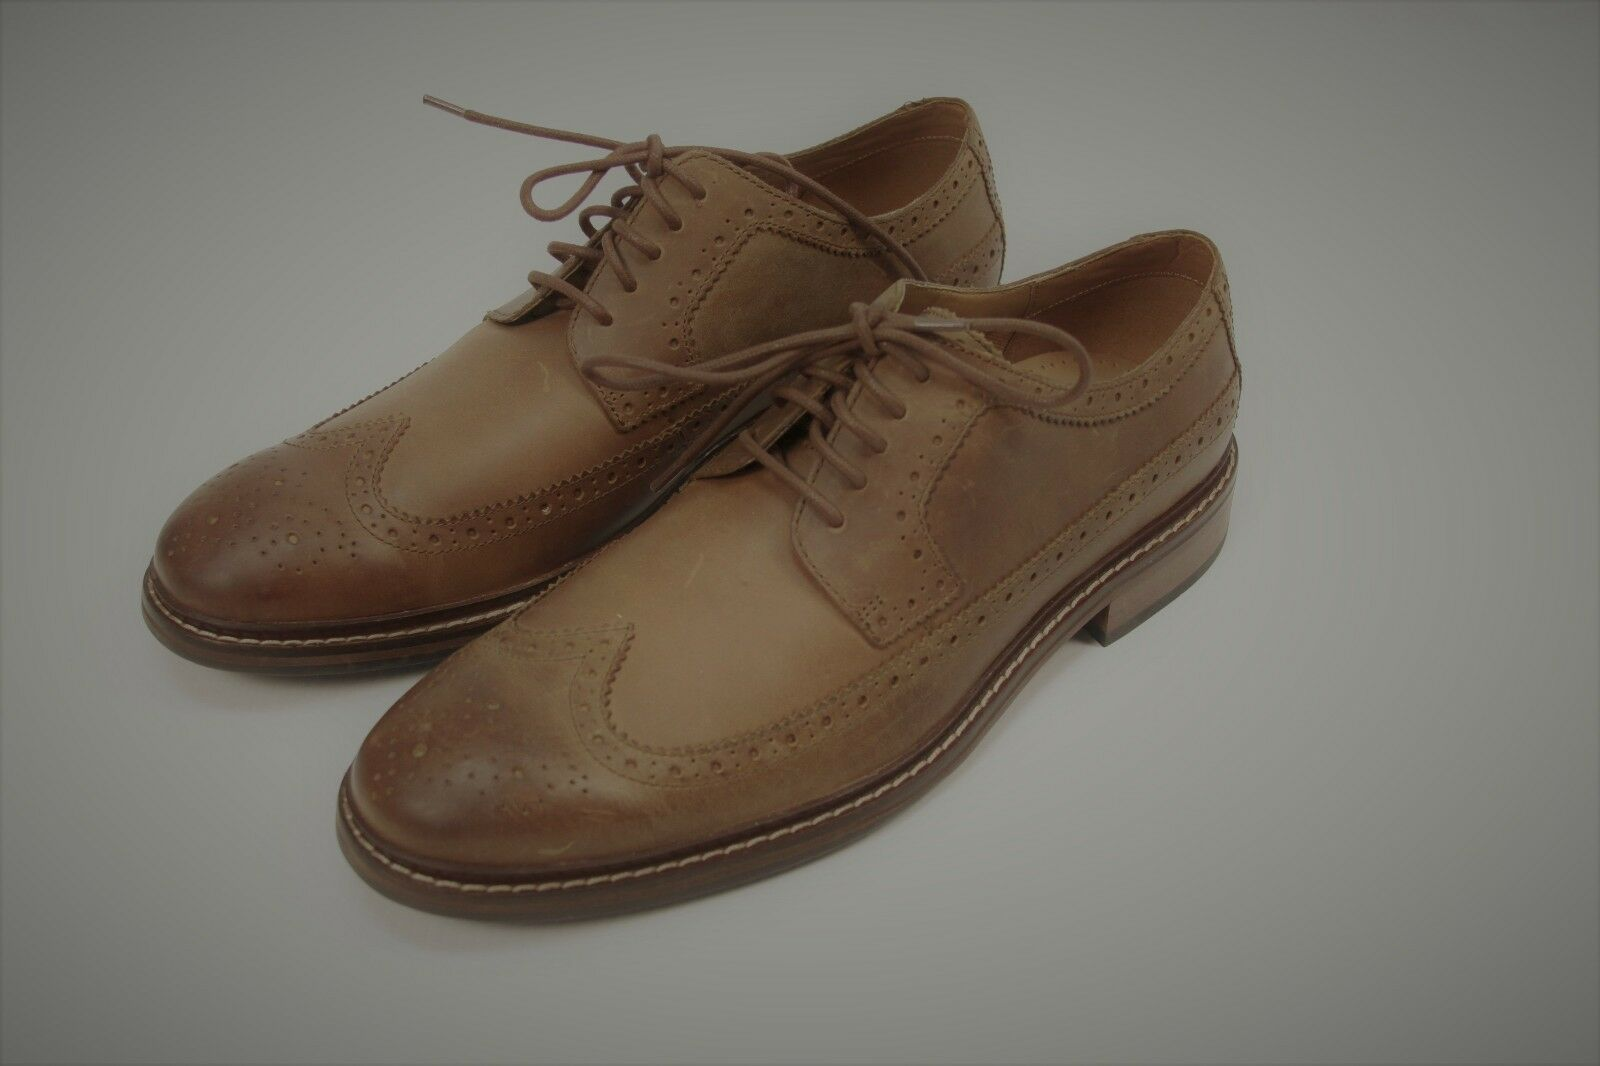 Authentic Cole Haan Men's casual oxfords lace up leather shoes 11 M